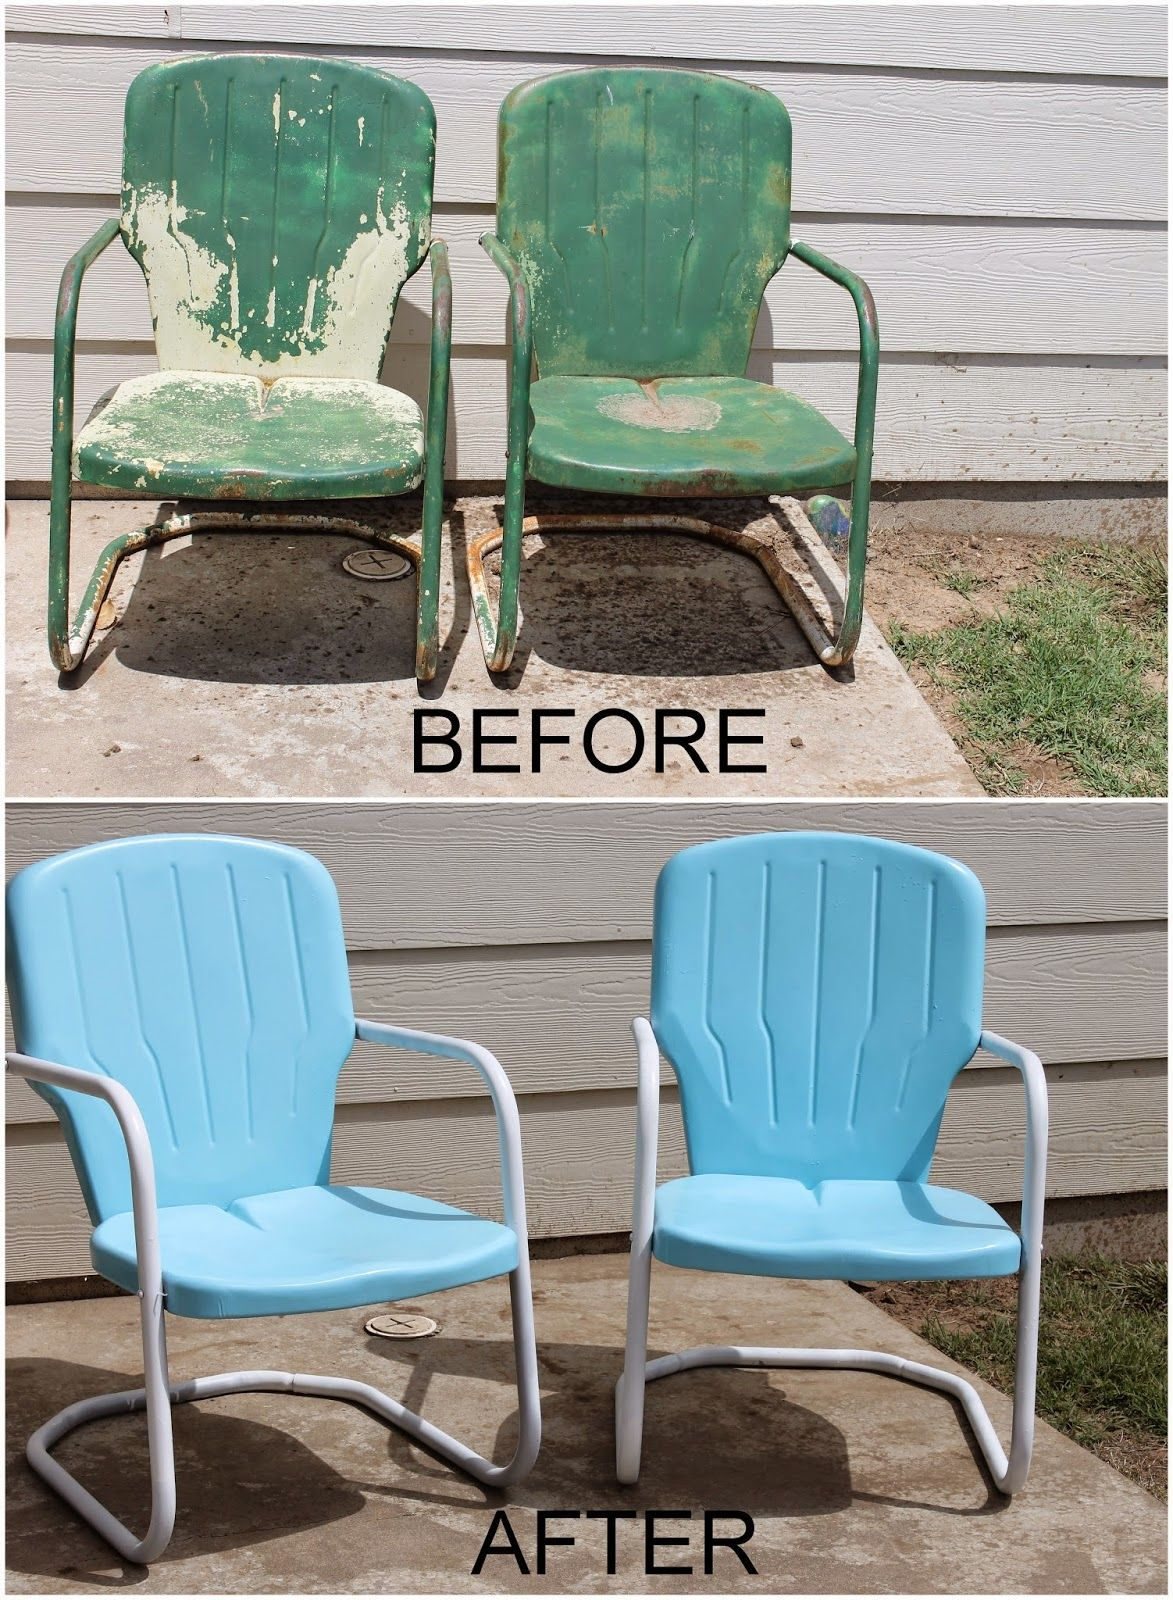 Retro Metal Patio Furniture Throughout Pinterest Repaint Old Metal Patio Chairs Diy Paint Outdoor Metal Motel Chairs Chairs